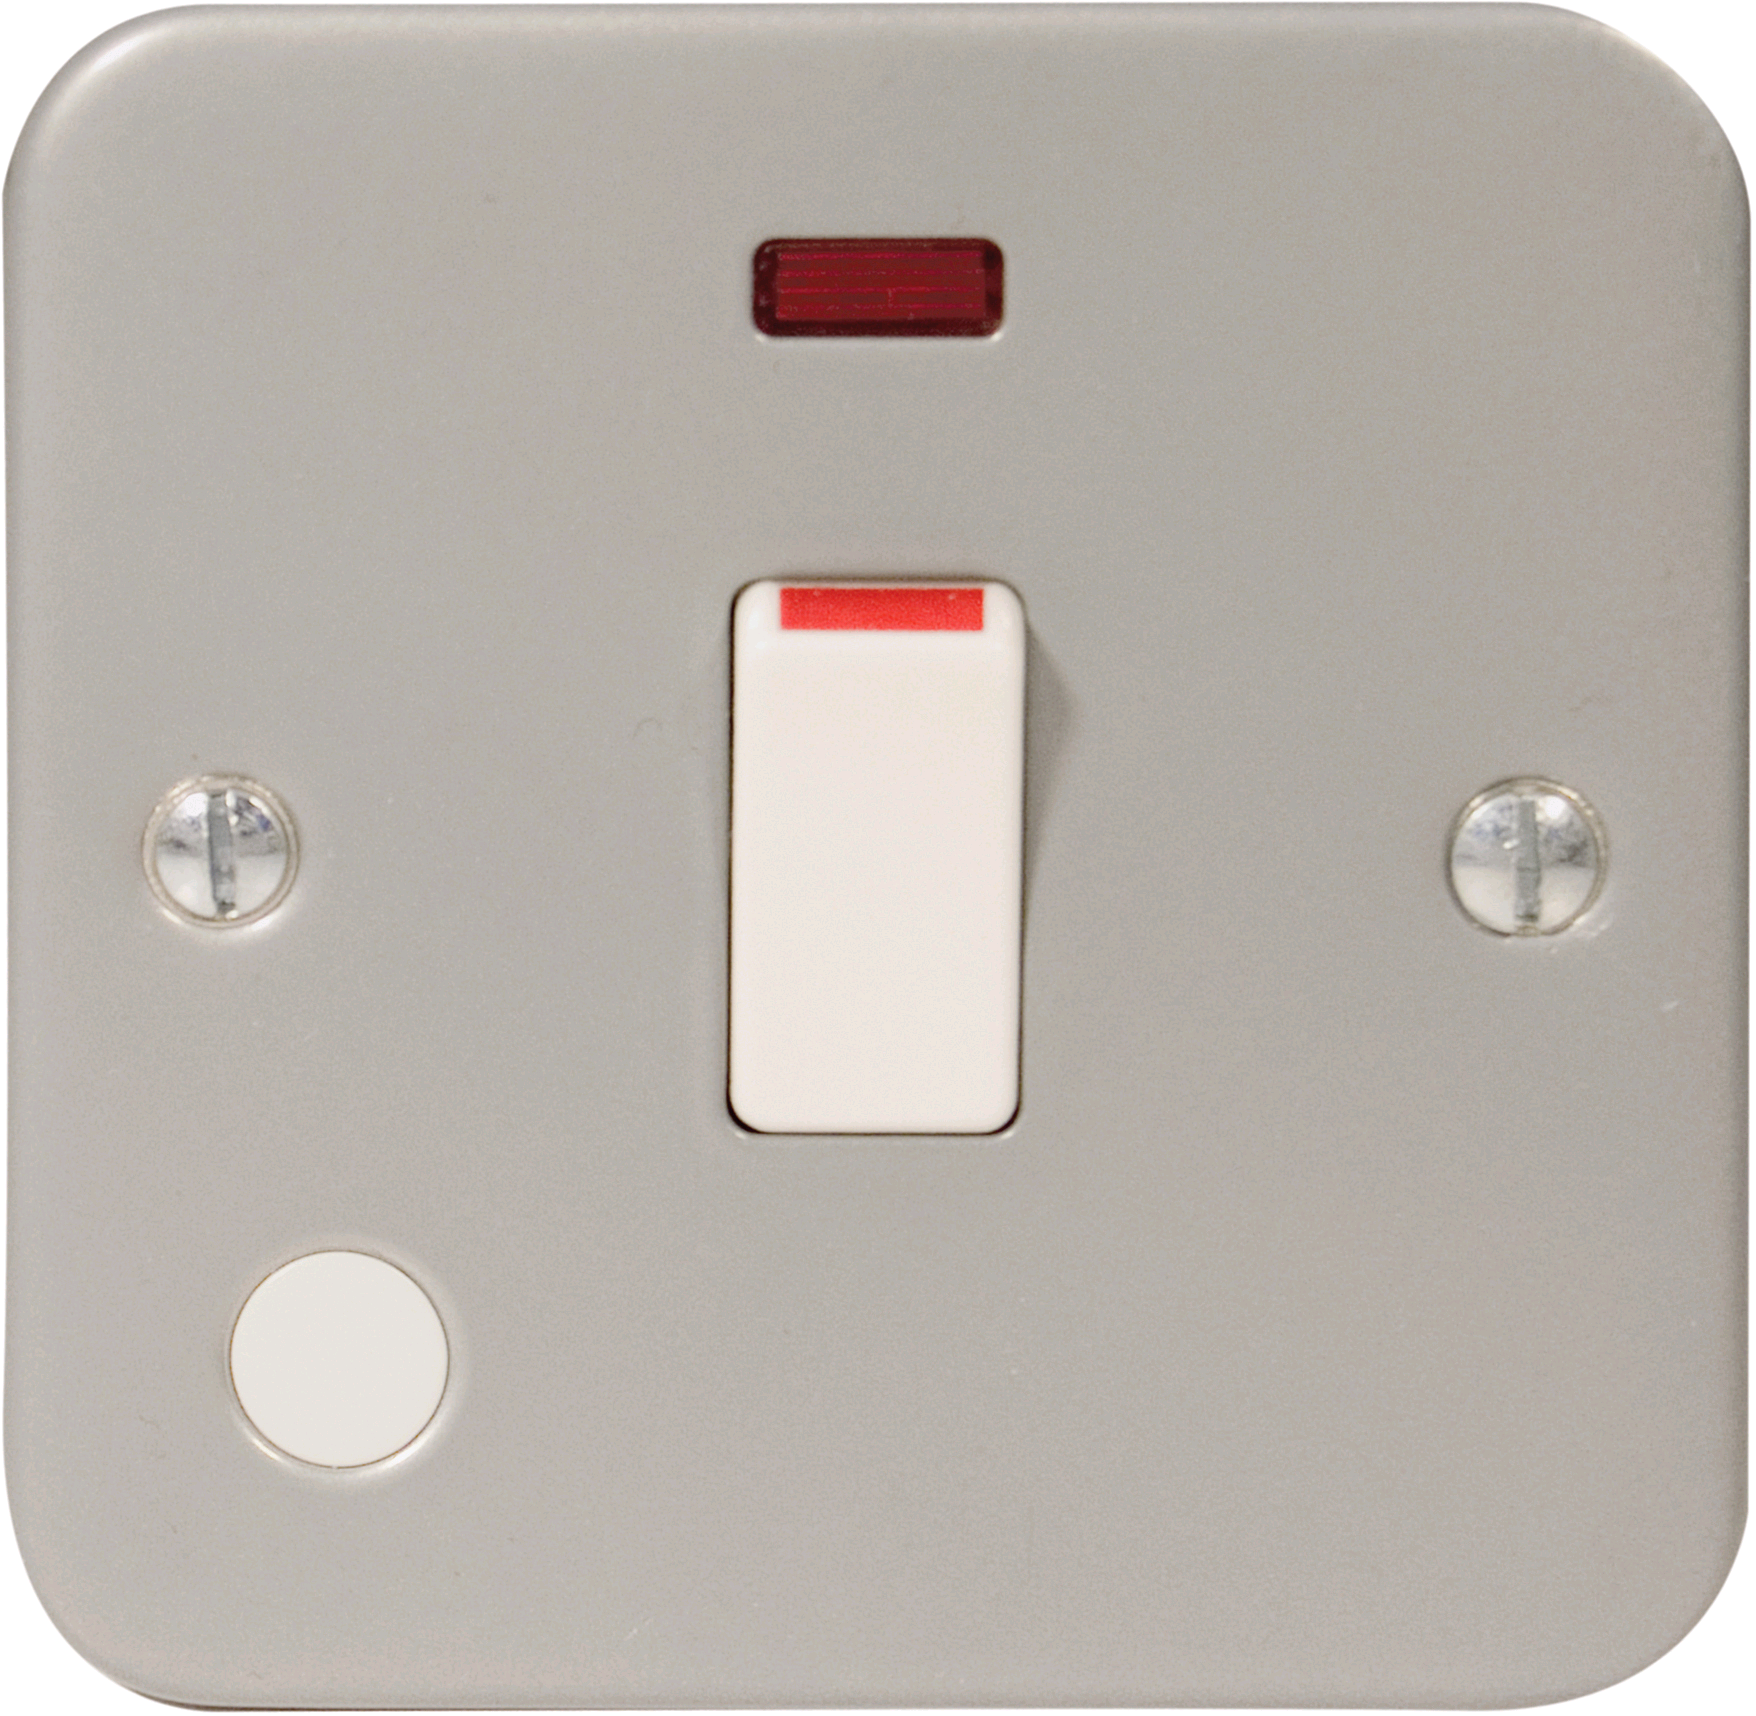 BG Metal Clad 20a DP & Neon Switch c/w Flex Outlet